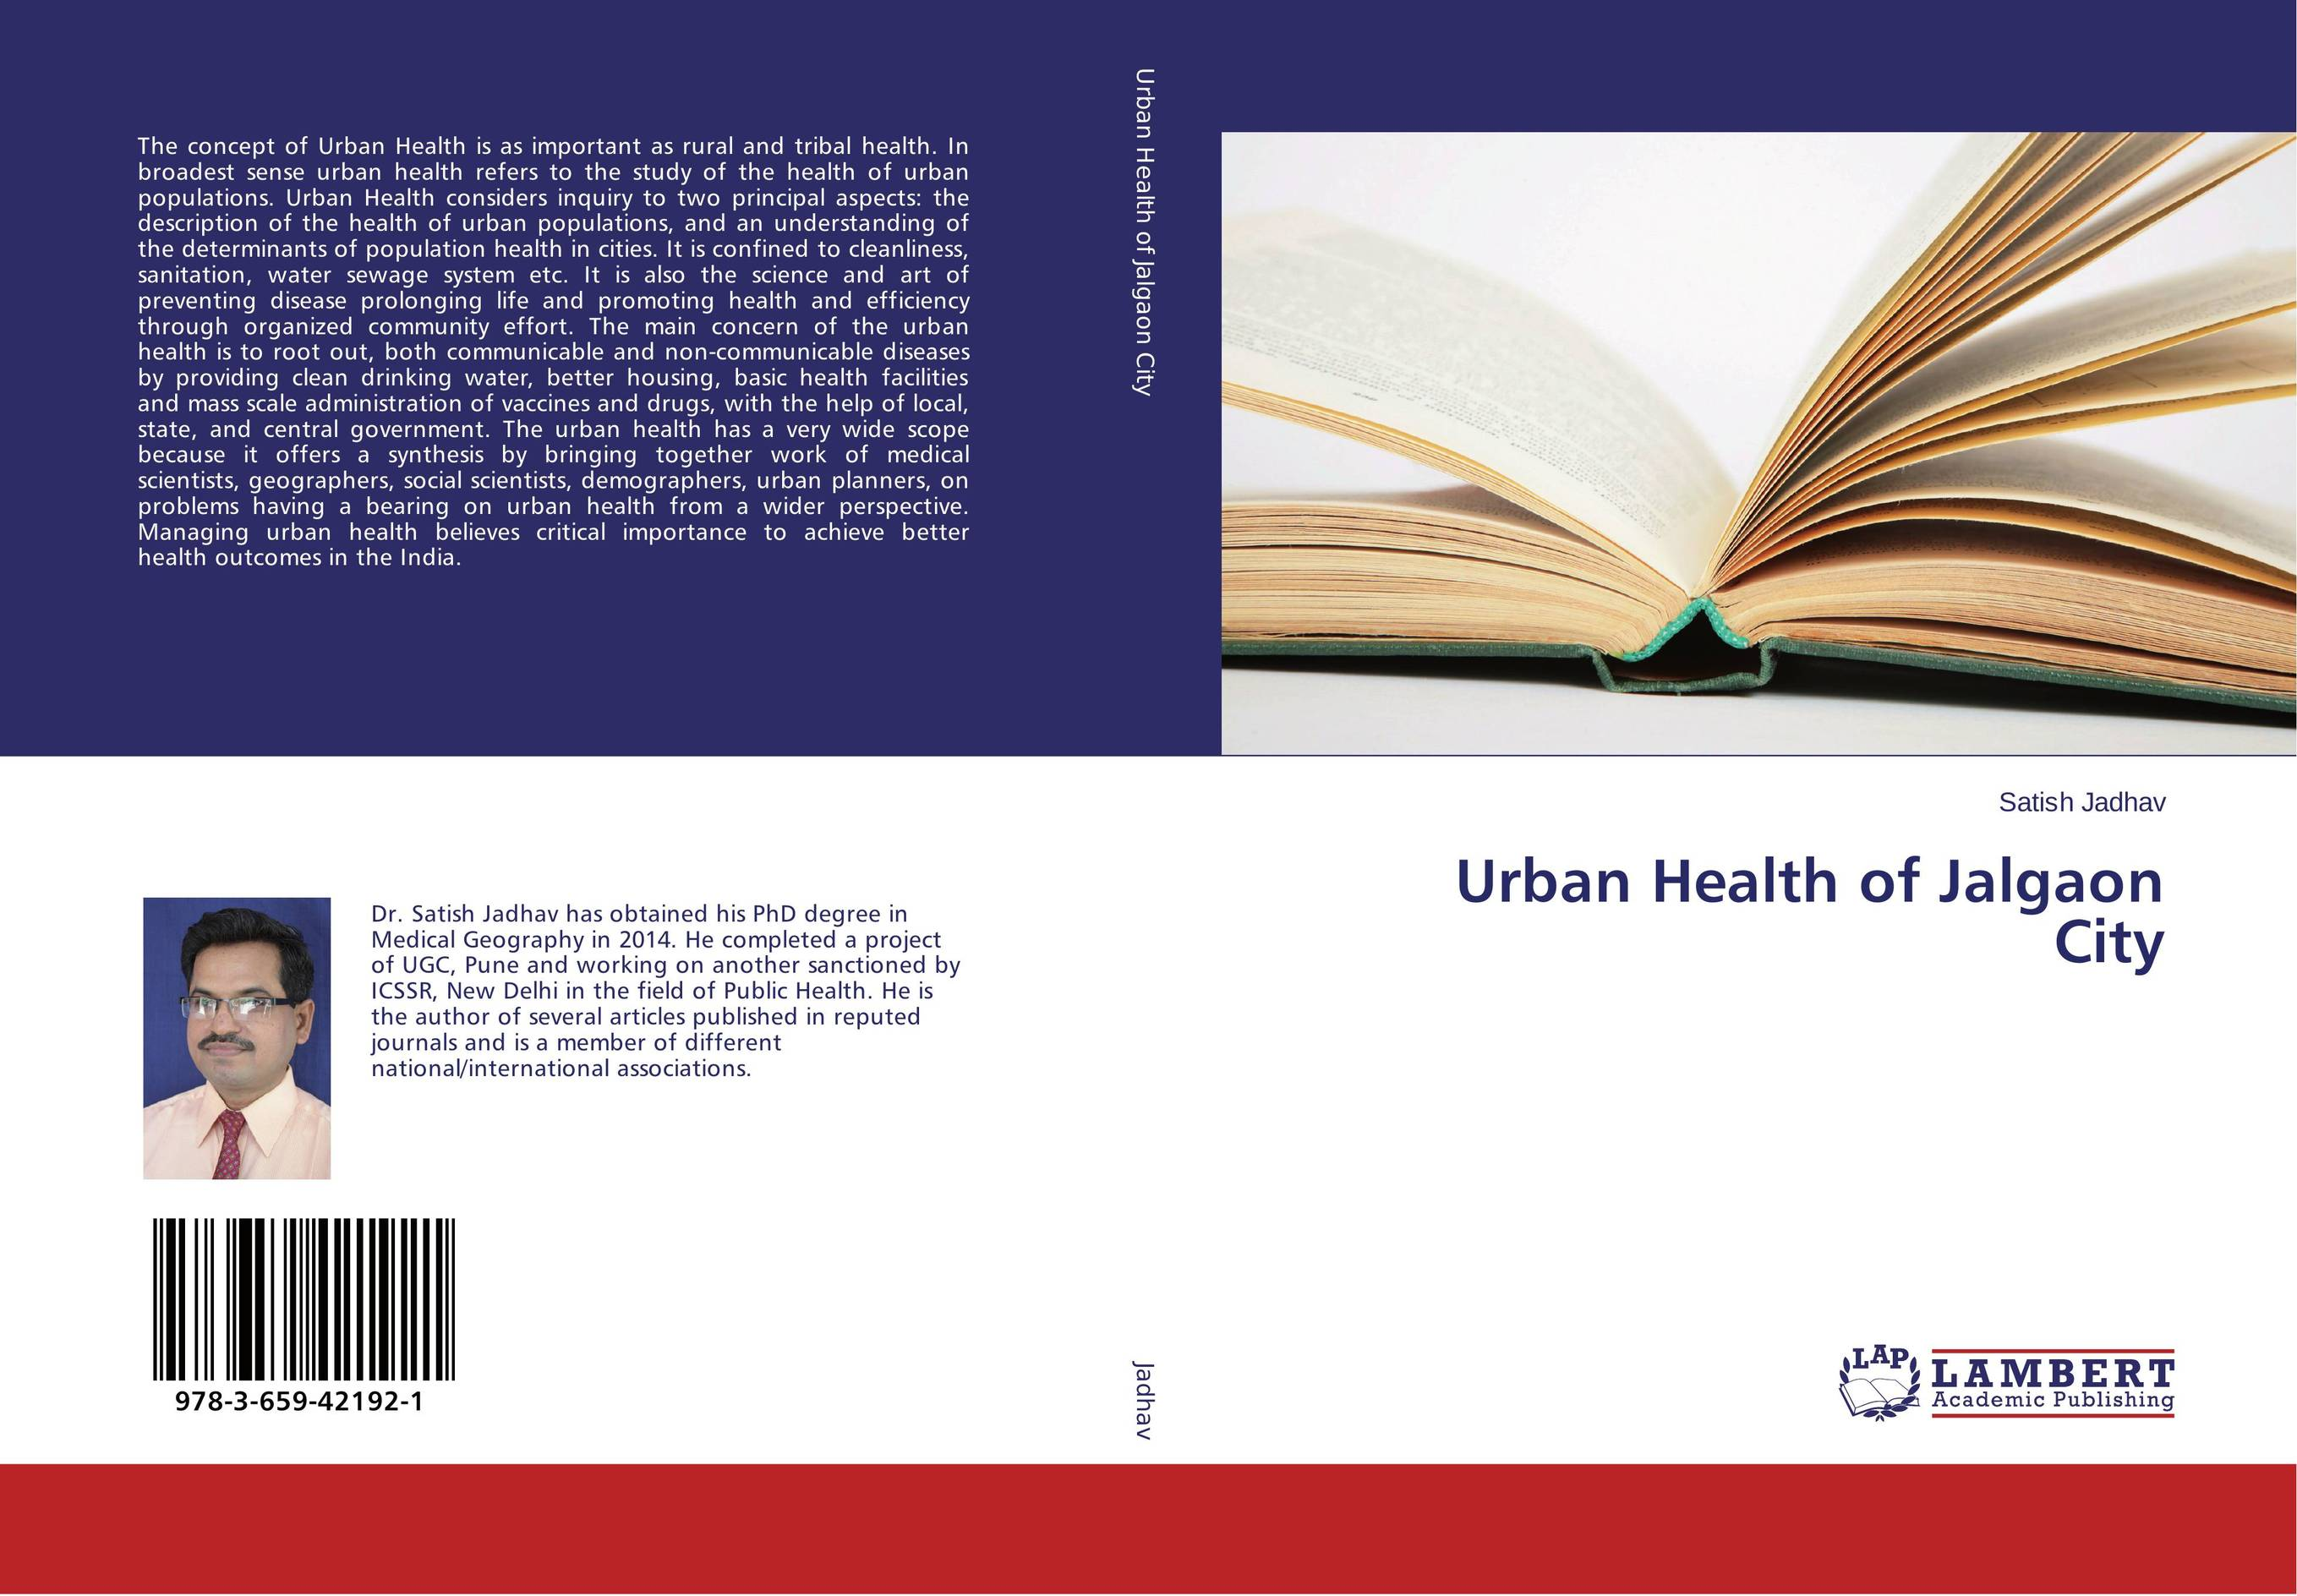 Urban Health of Jalgaon City концентрат health